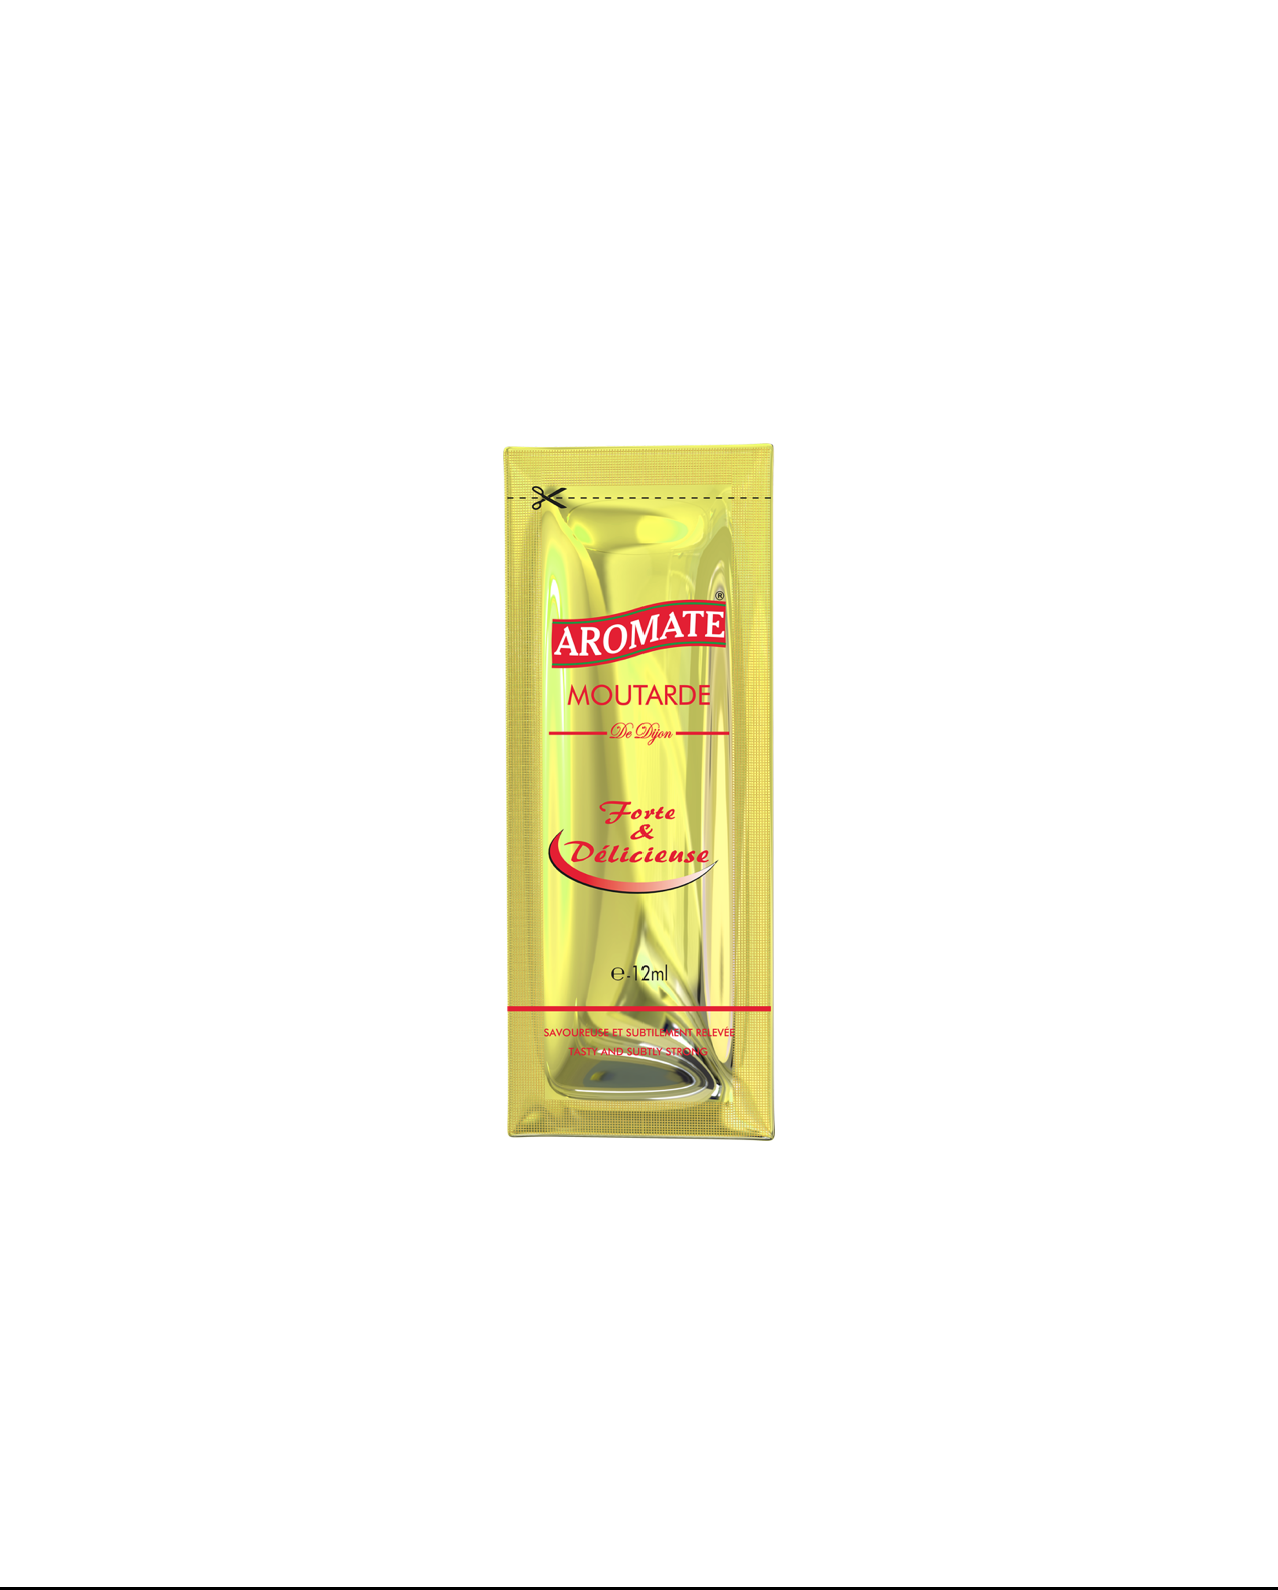 AROMATE_Moutarde-12ml